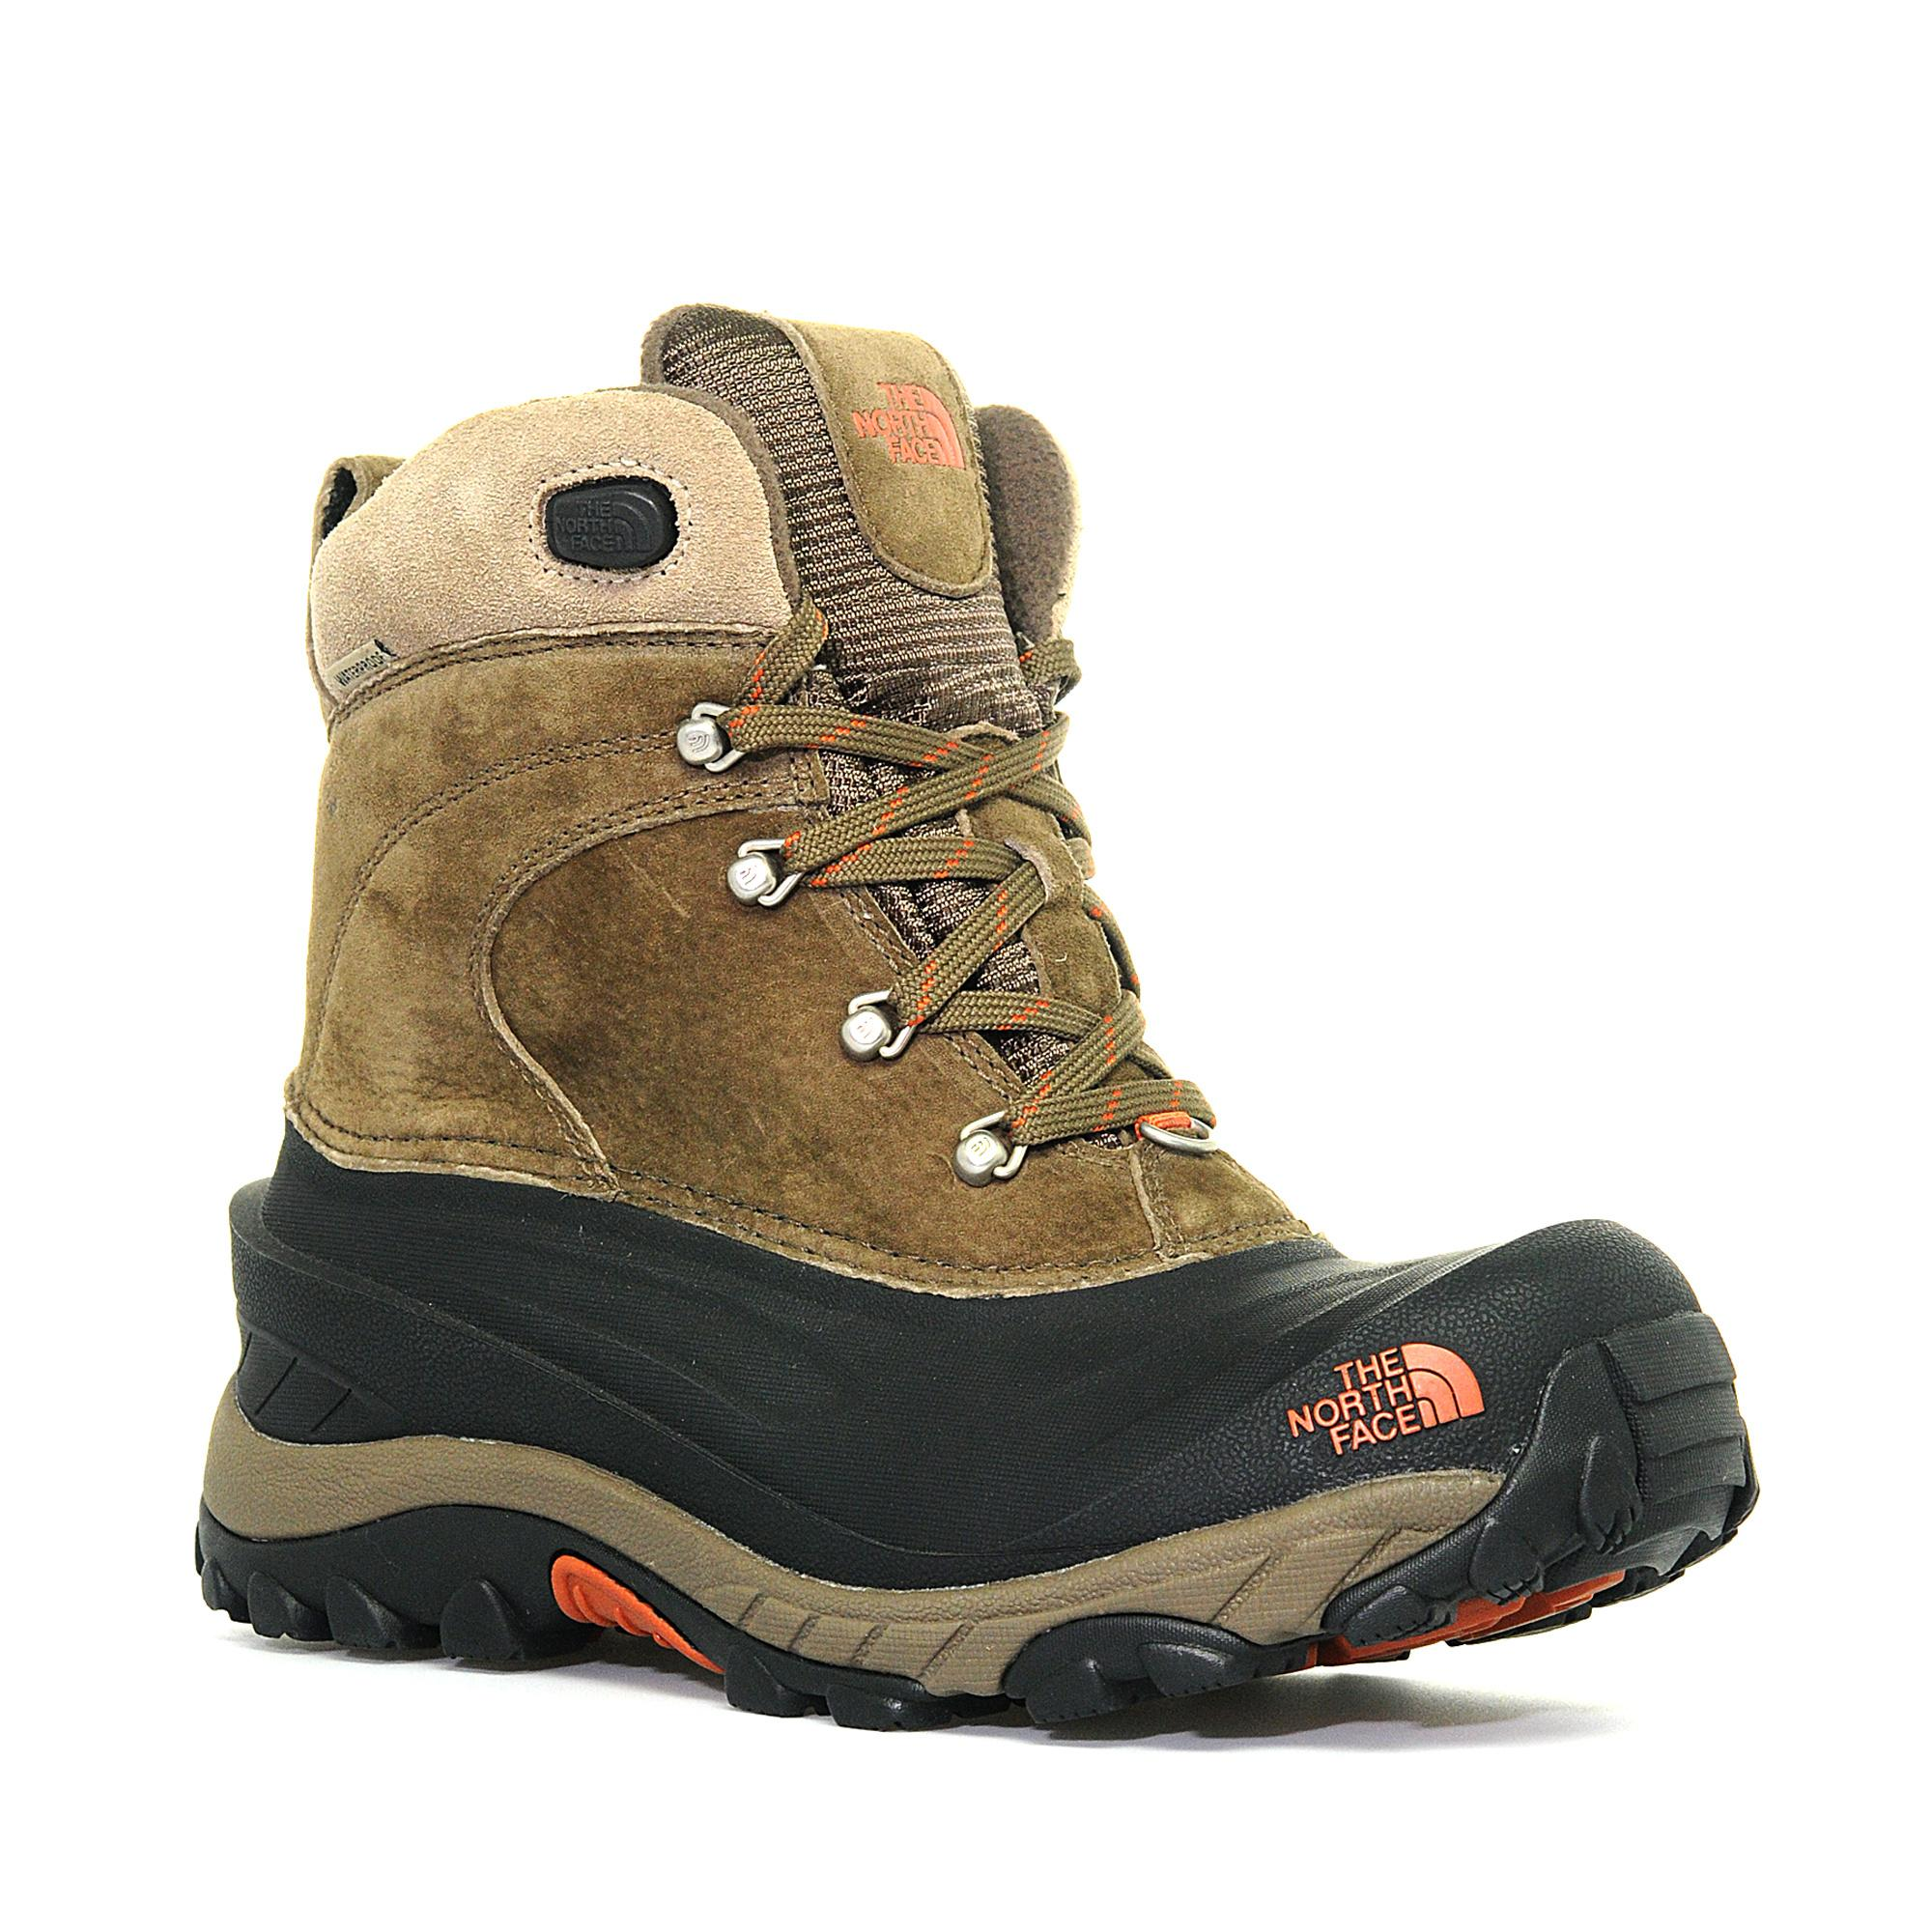 Mens Snow Boots Sale u9z7ePC5